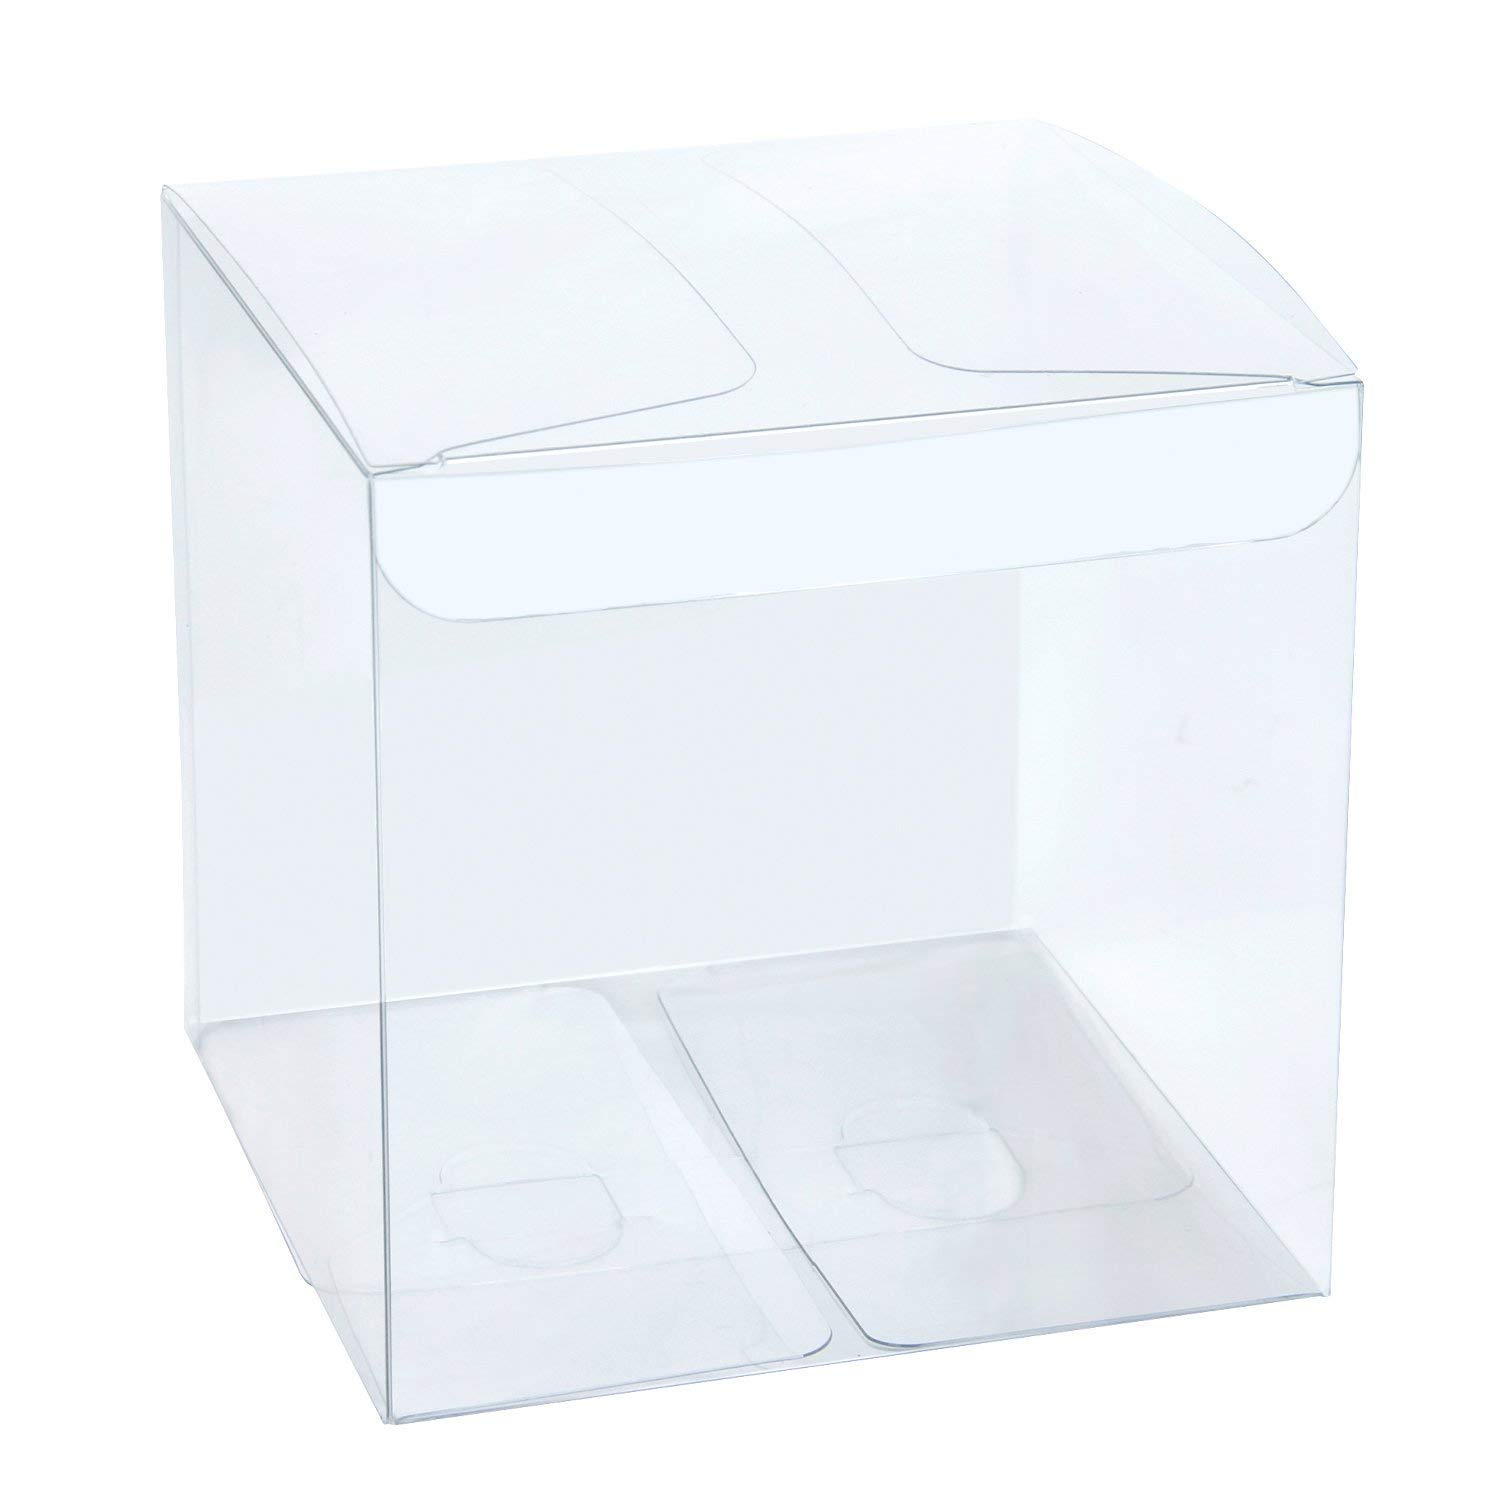 LaRibbons 50Pcs PET Clear Box, Transparent Boxes/Clear Gift Boxes for Wedding, Party and Baby Shower Favors, 4'' L x 4'' W x 4'' H